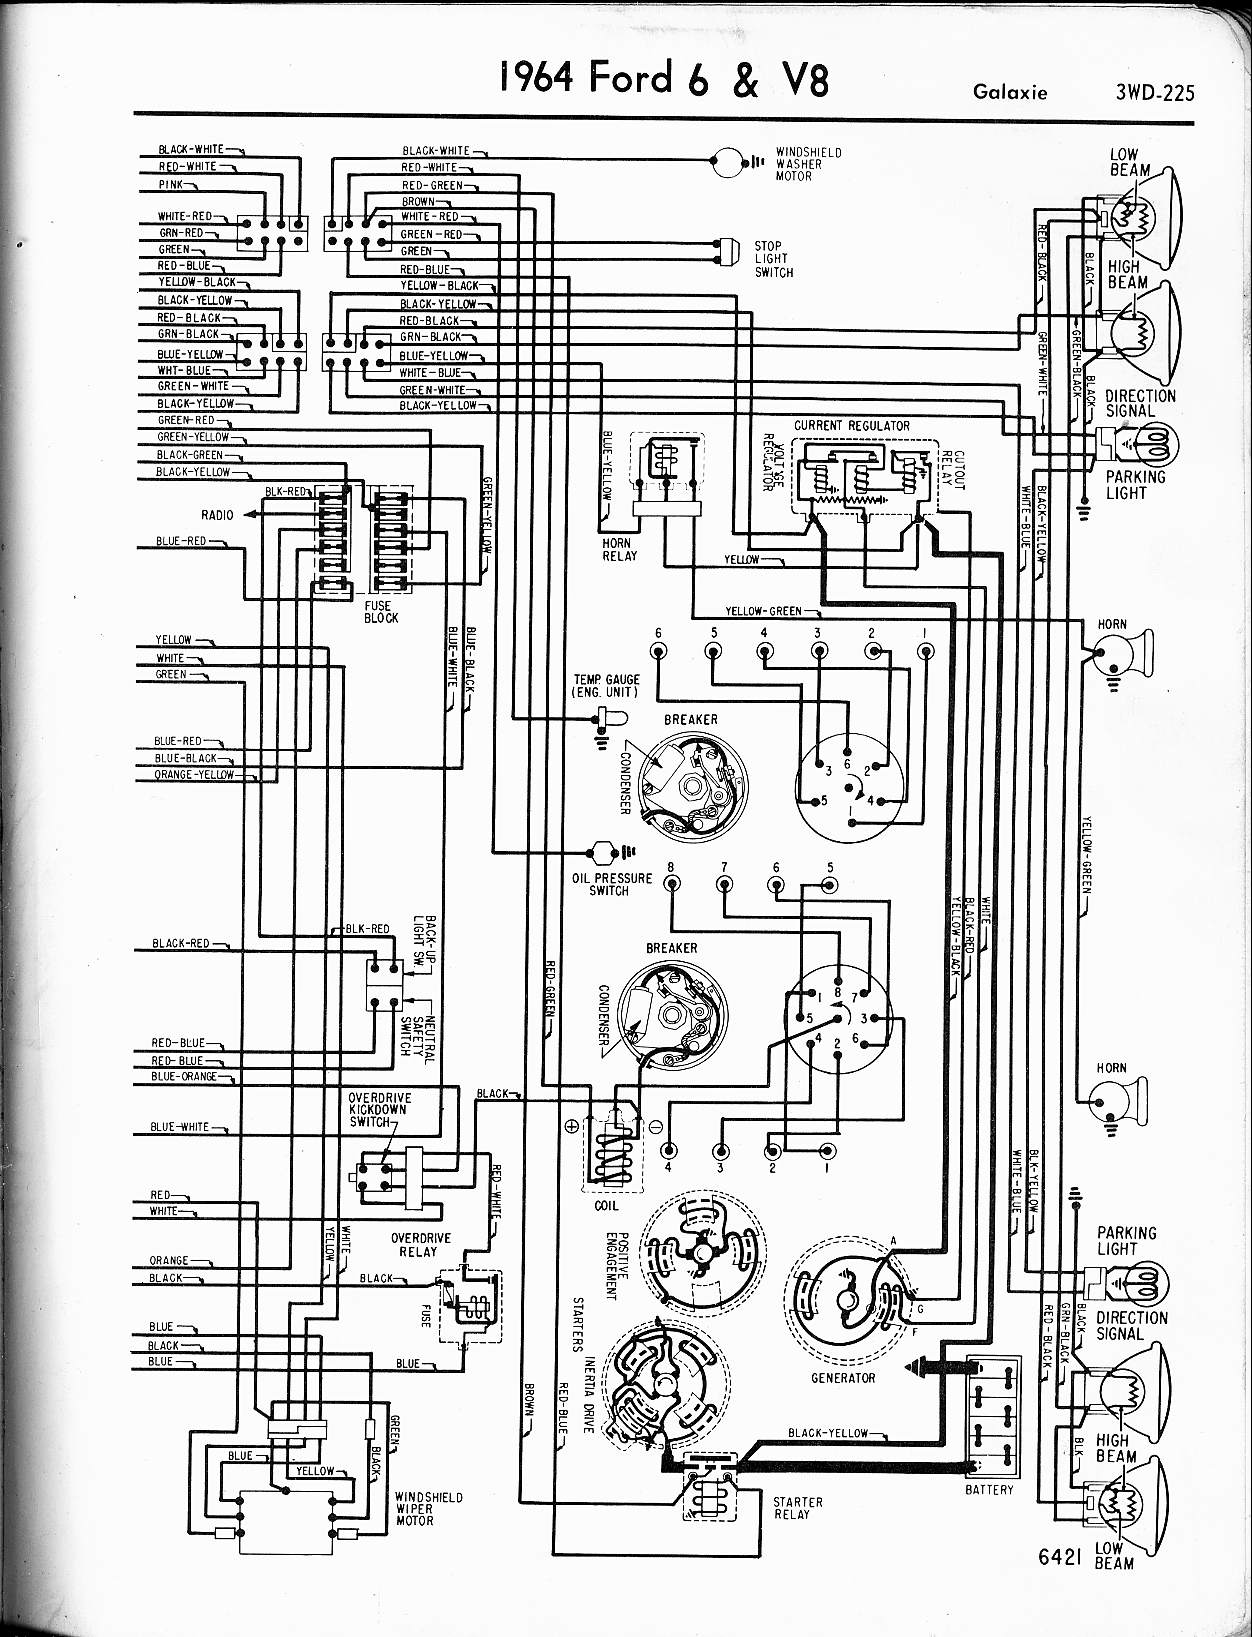 MWire5765 225 57 65 ford wiring diagrams 1964 ford fairlane wiring diagram at panicattacktreatment.co